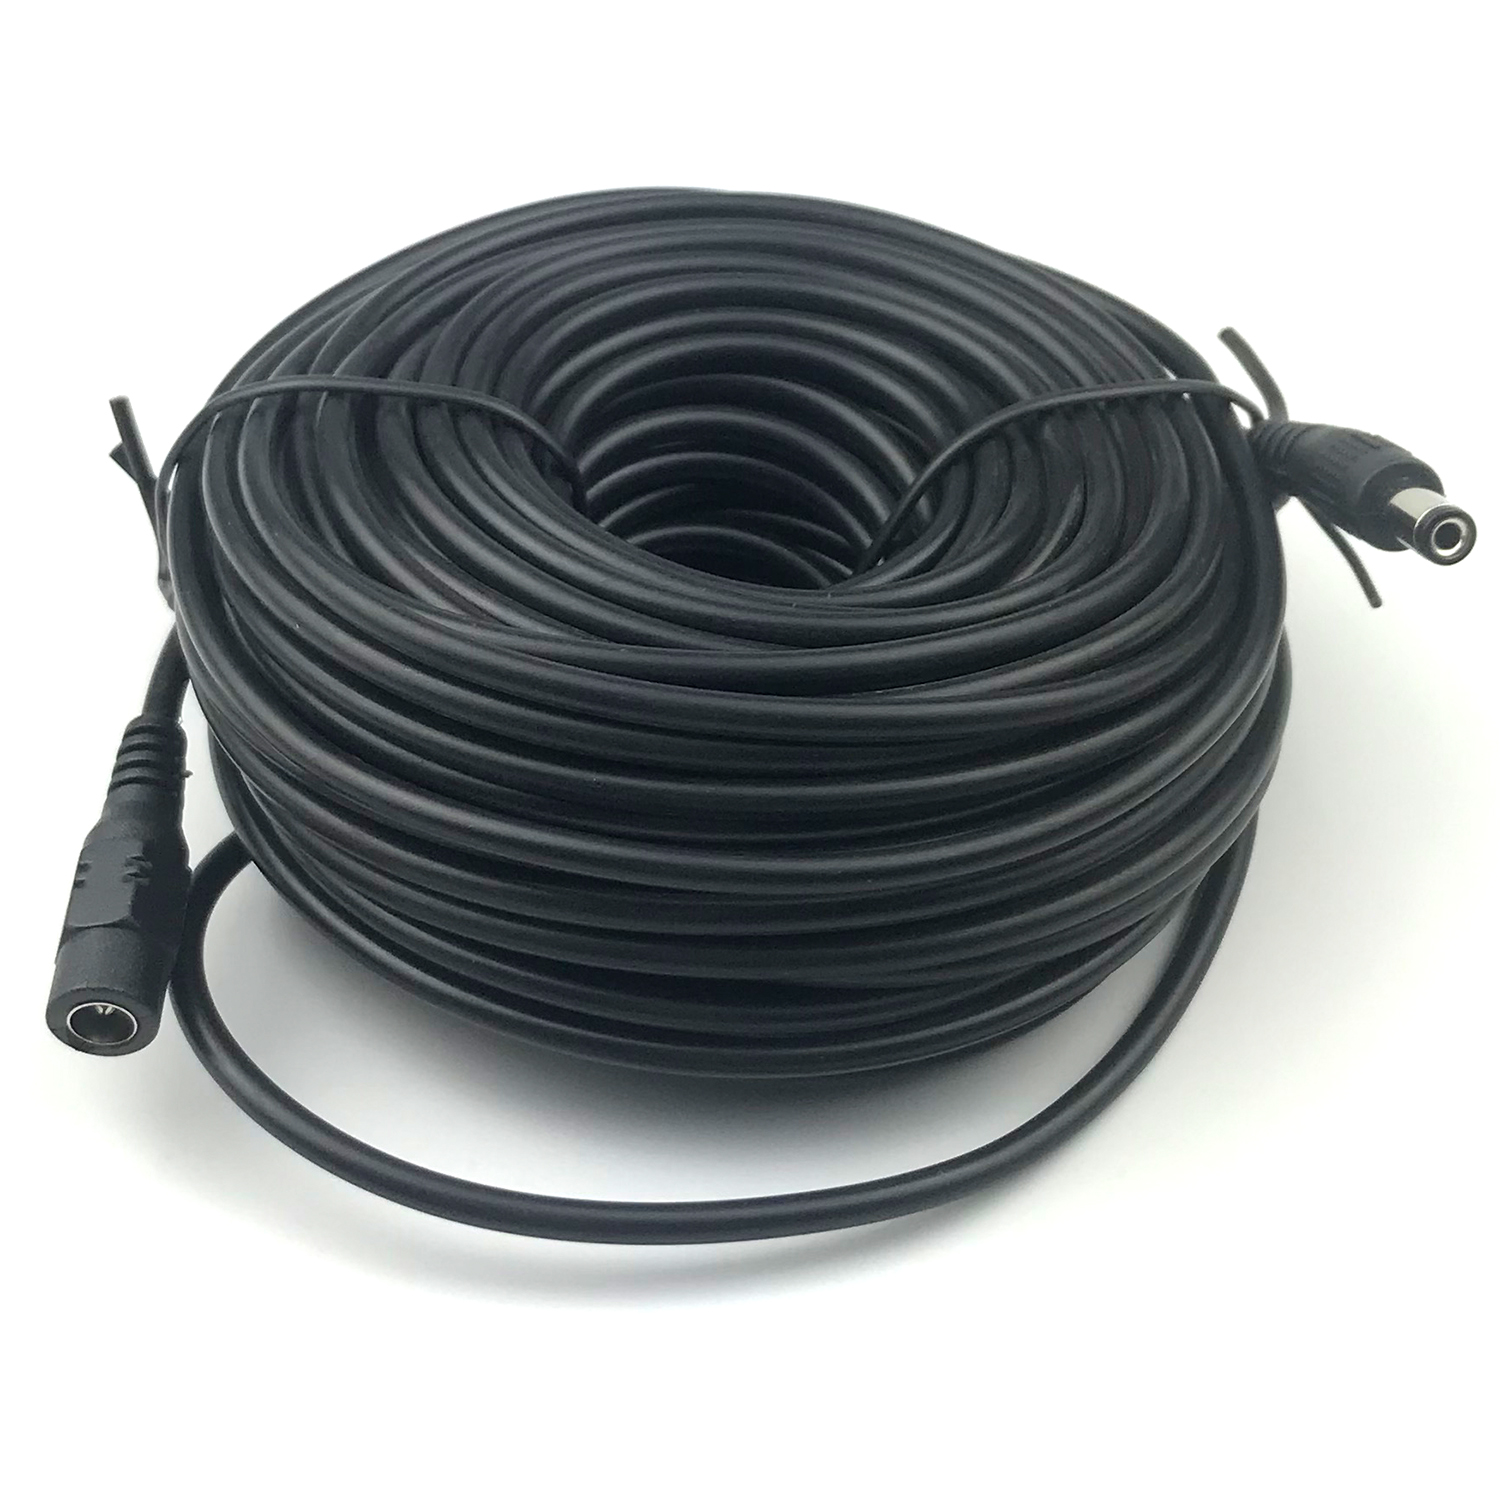 Uvusee Cctv 20meters 2.1x5.5mm Dc 12v Power Extension Cable For Cctv Security Cameras Audio Camera Ip Camera Dvr Standalone